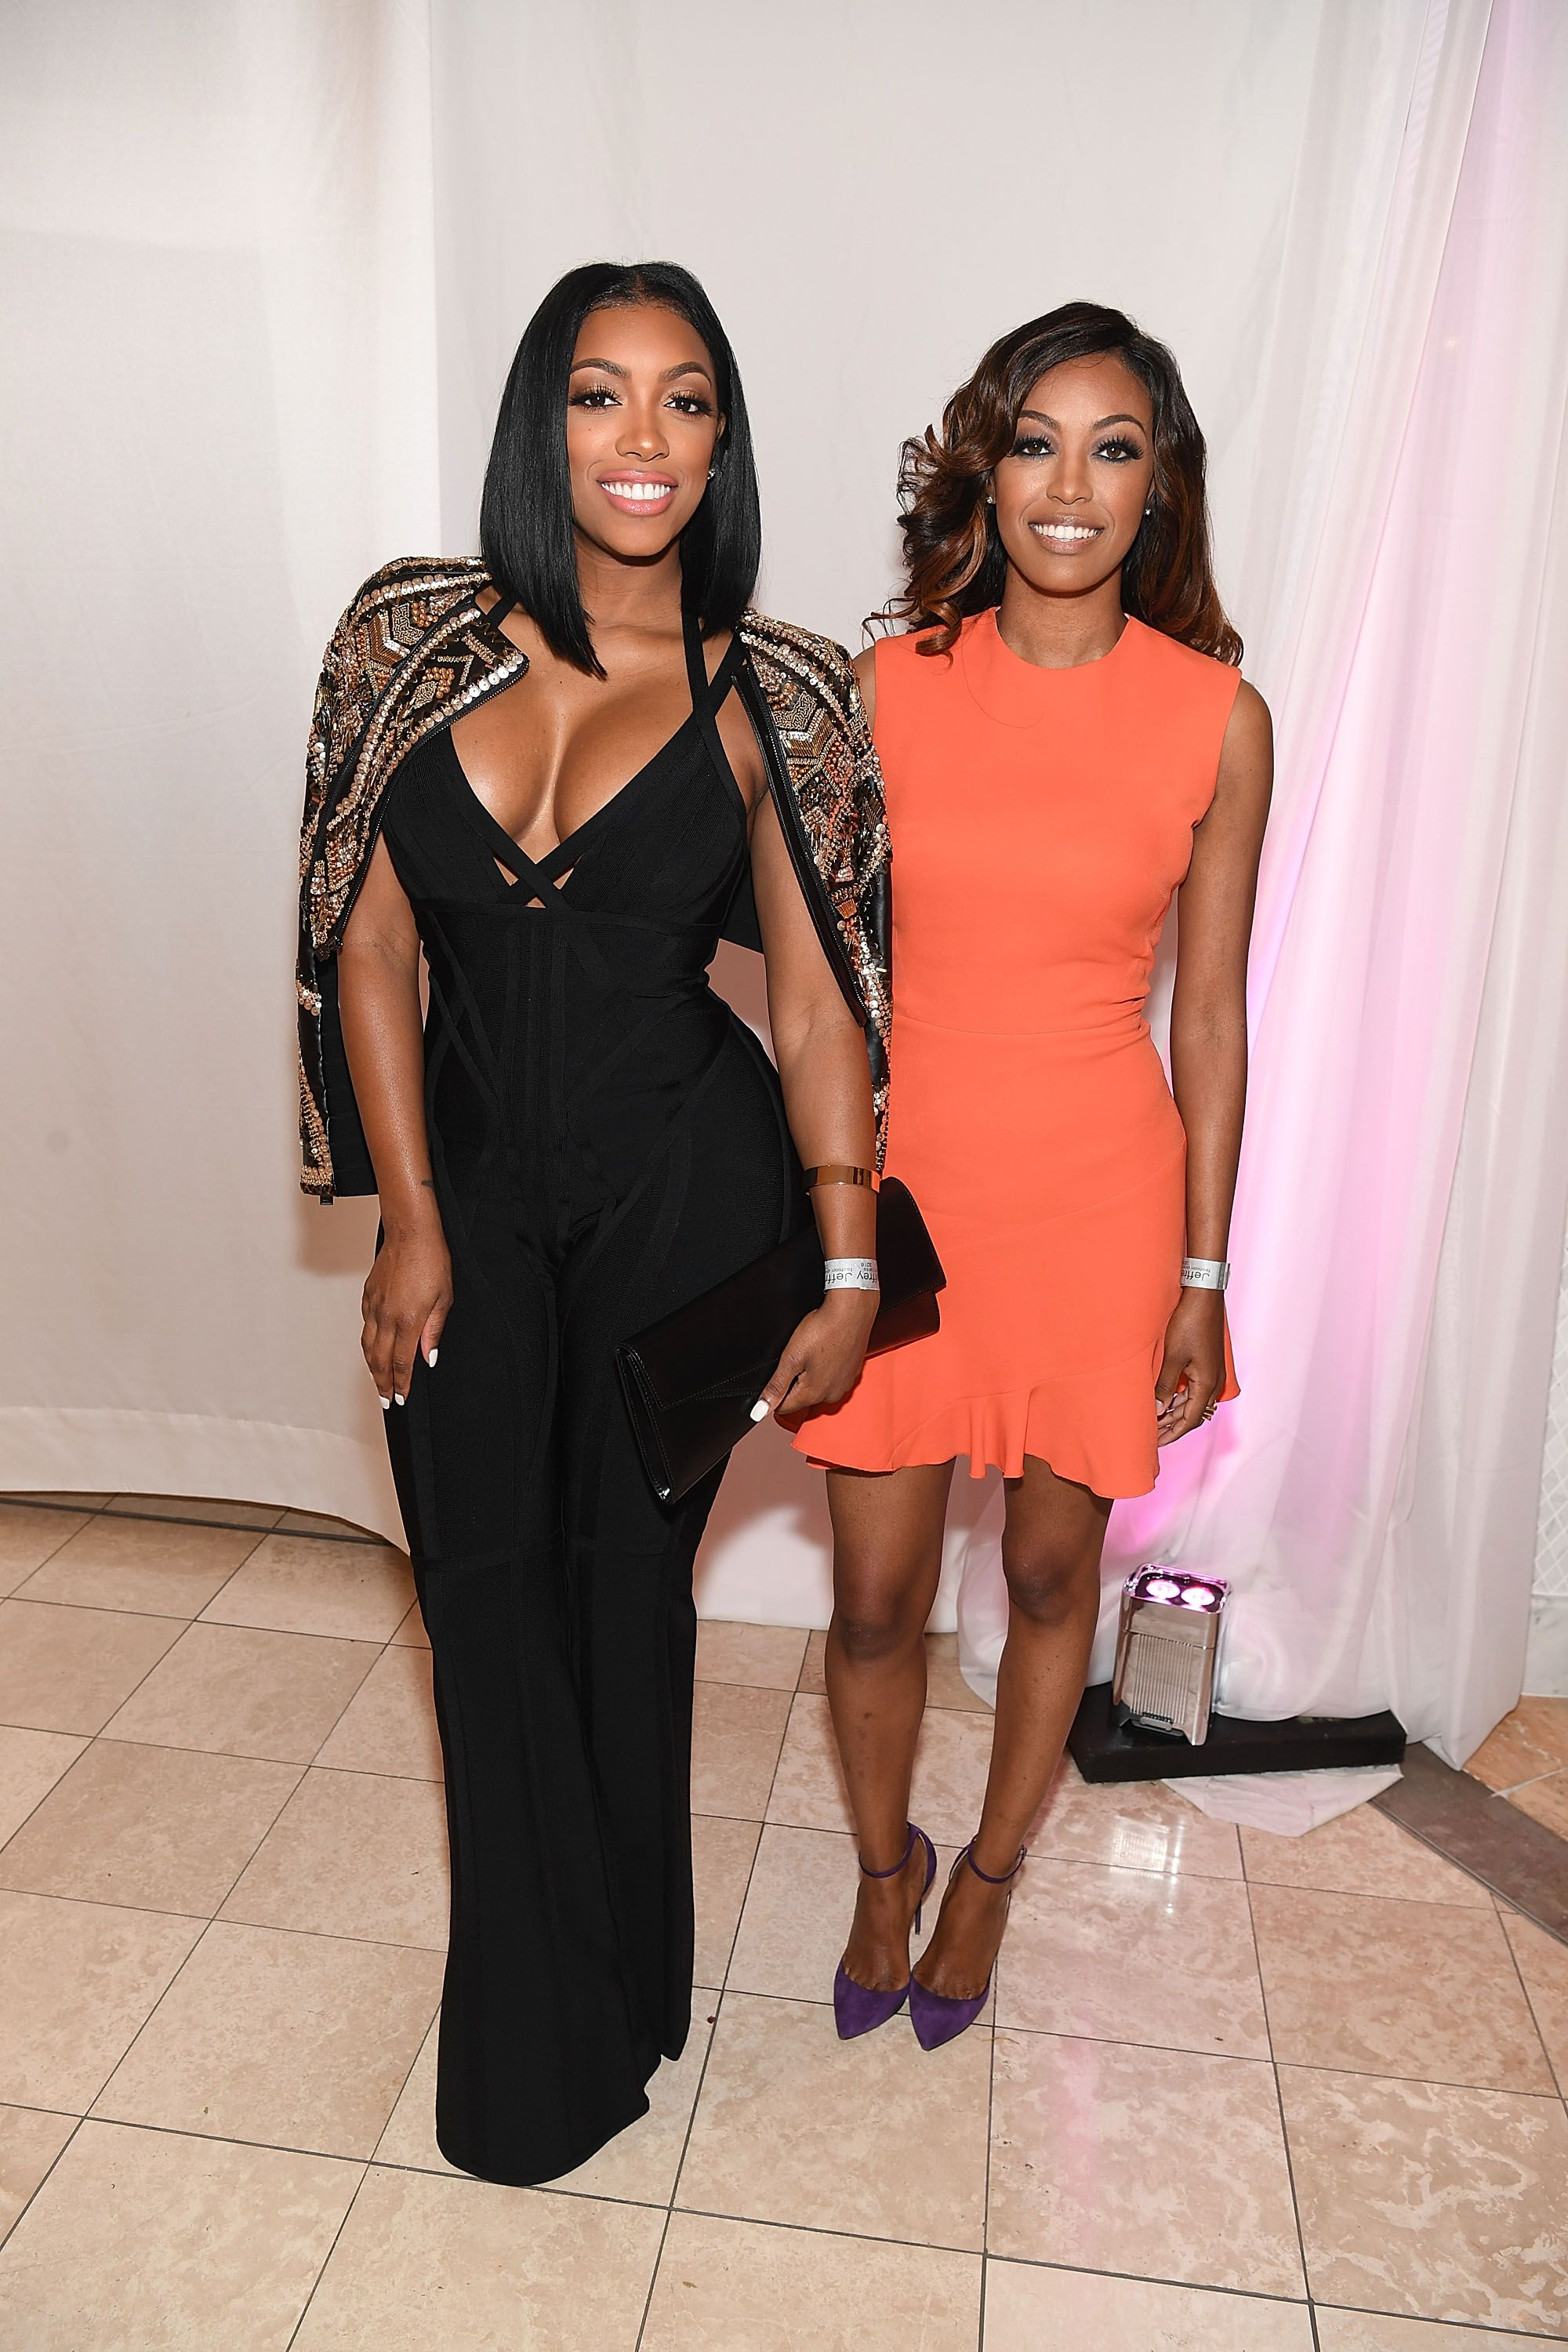 Porsha Williams and sister Lauren Williams at the 2016 Jeffrey Fashion Cares Atlanta in August 2016 in Atlanta, Georgia | Source: Getty Images